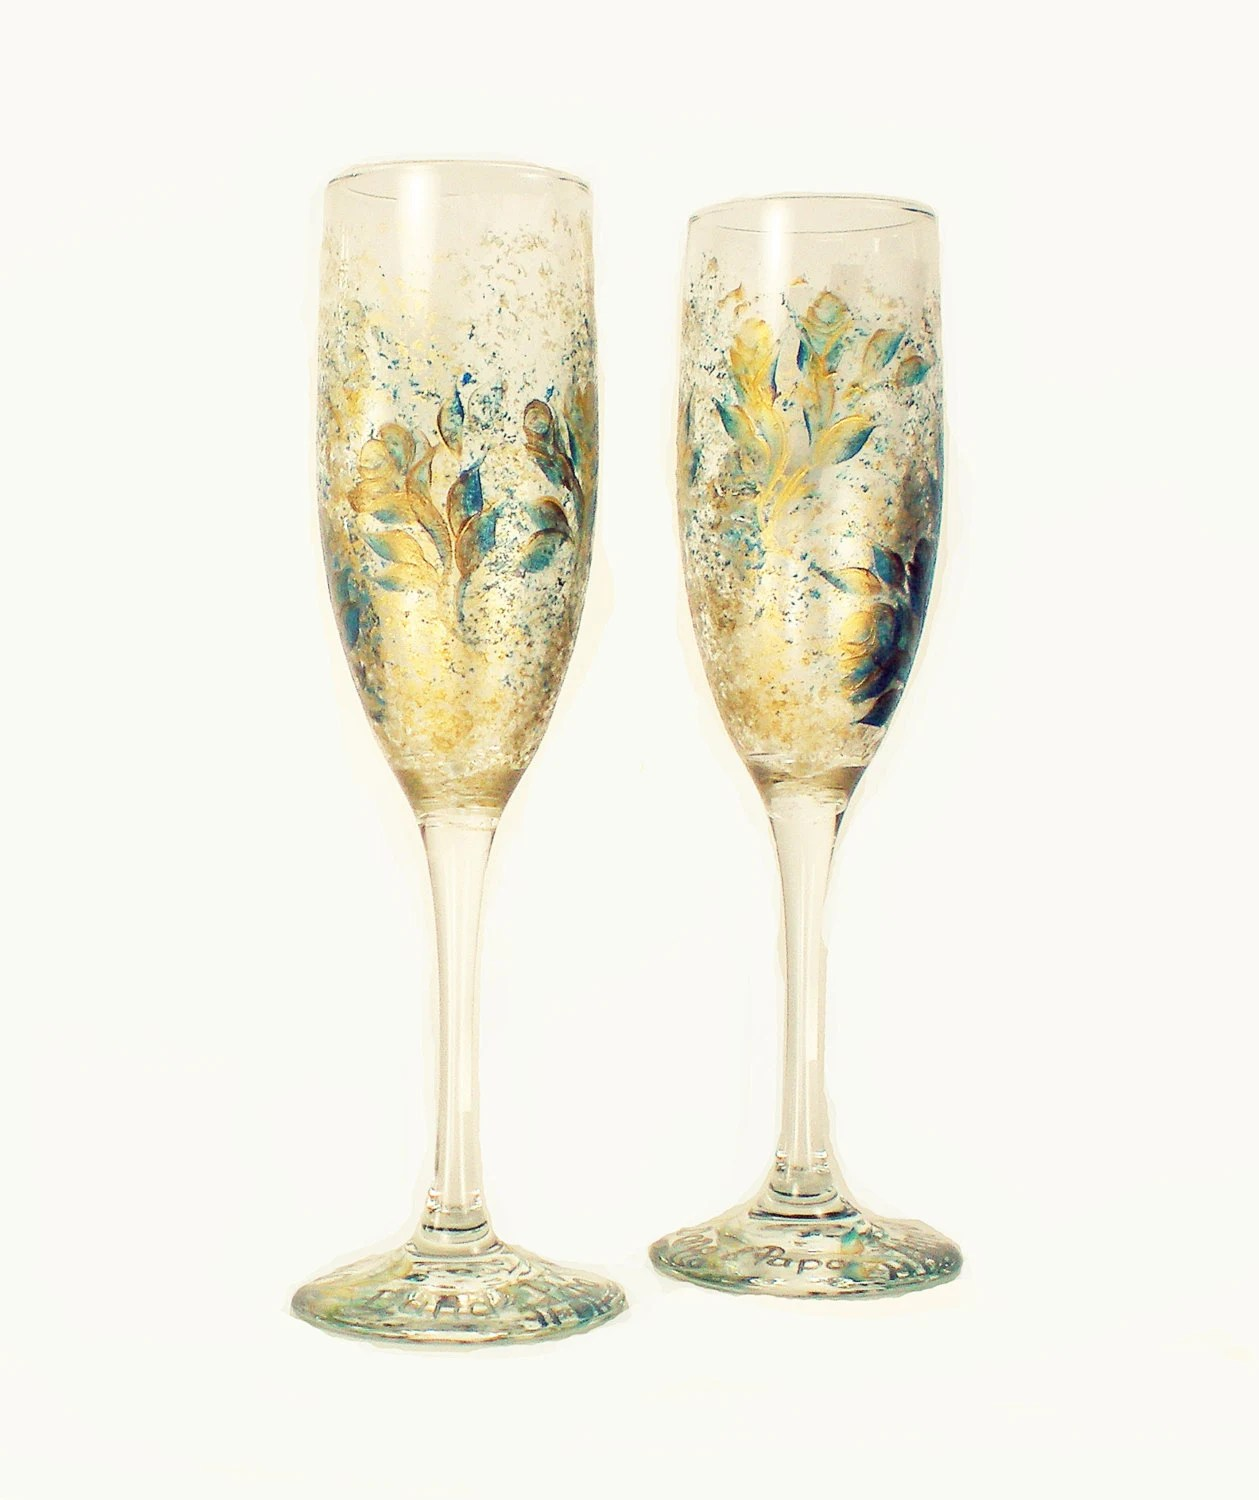 Wedding Toast Champagne Glasses - Hand Painted Teal and Gold Roses, Set of 2 - Anniversary Sparking Wine Glasses flûtes à champagne mariage - HandPaintedPetals